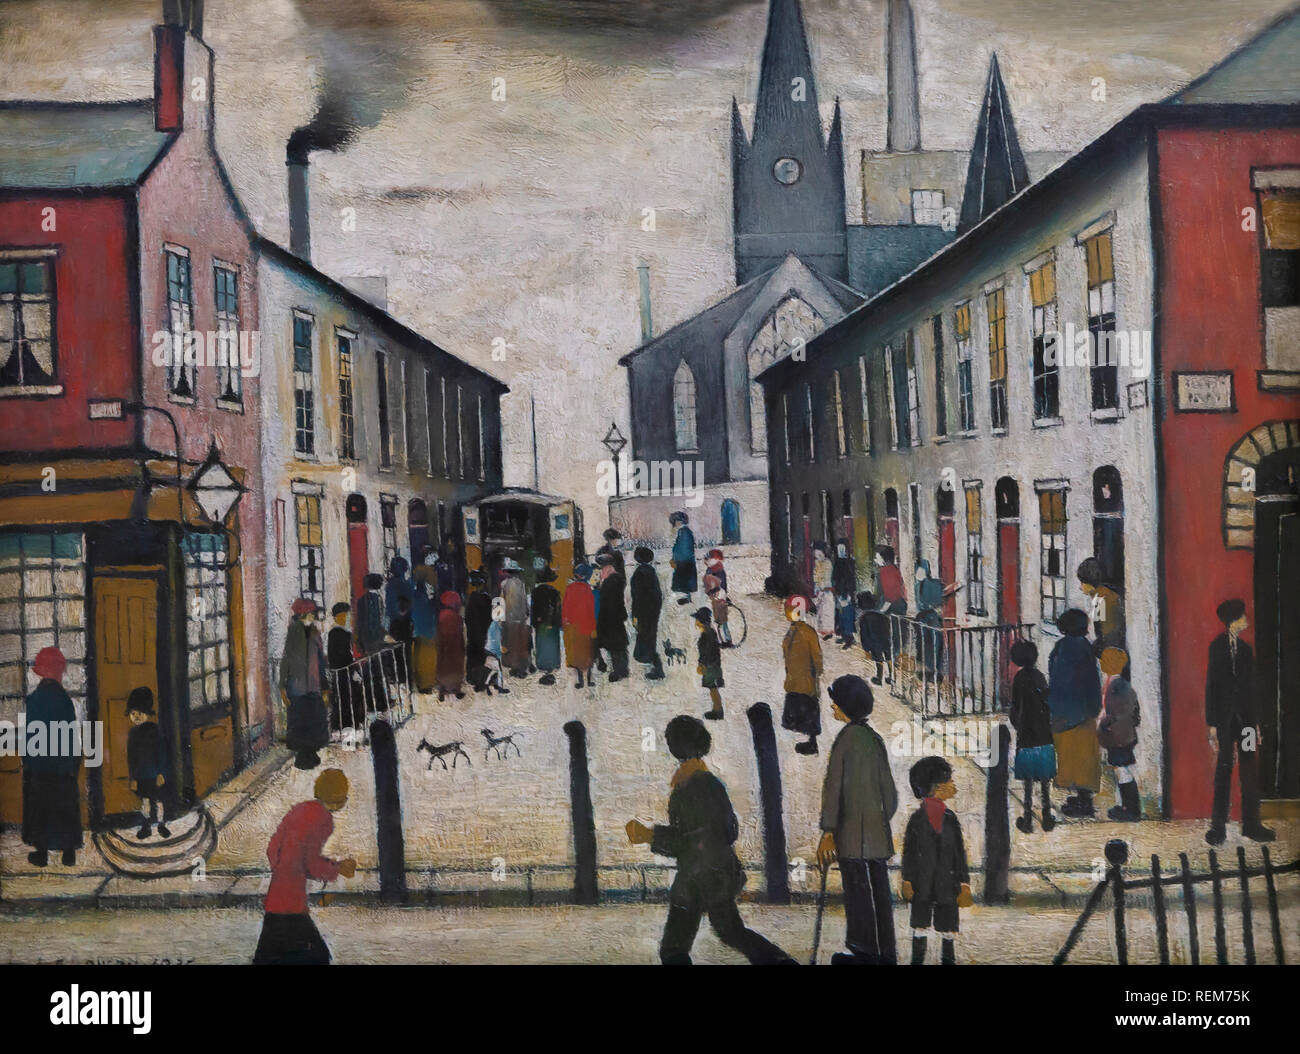 Pittore Inglese Lowry Laurence Stephen Lowry Stock Photos Laurence Stephen Lowry Stock